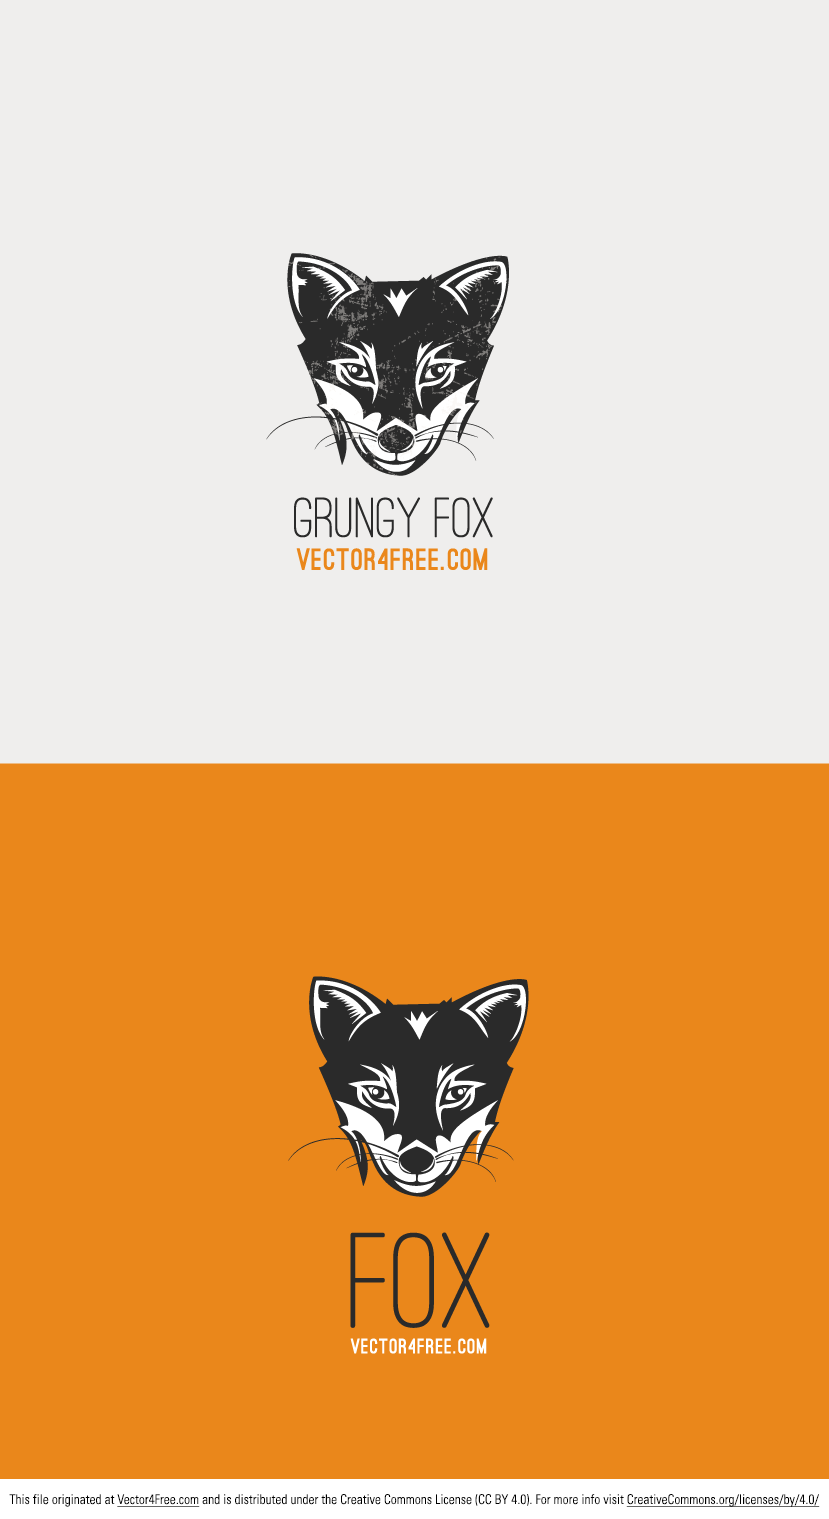 Vector Fox was crafted with care by the team of Vector4free.com in two versions: simple and grunge. You can use it as a logo. 